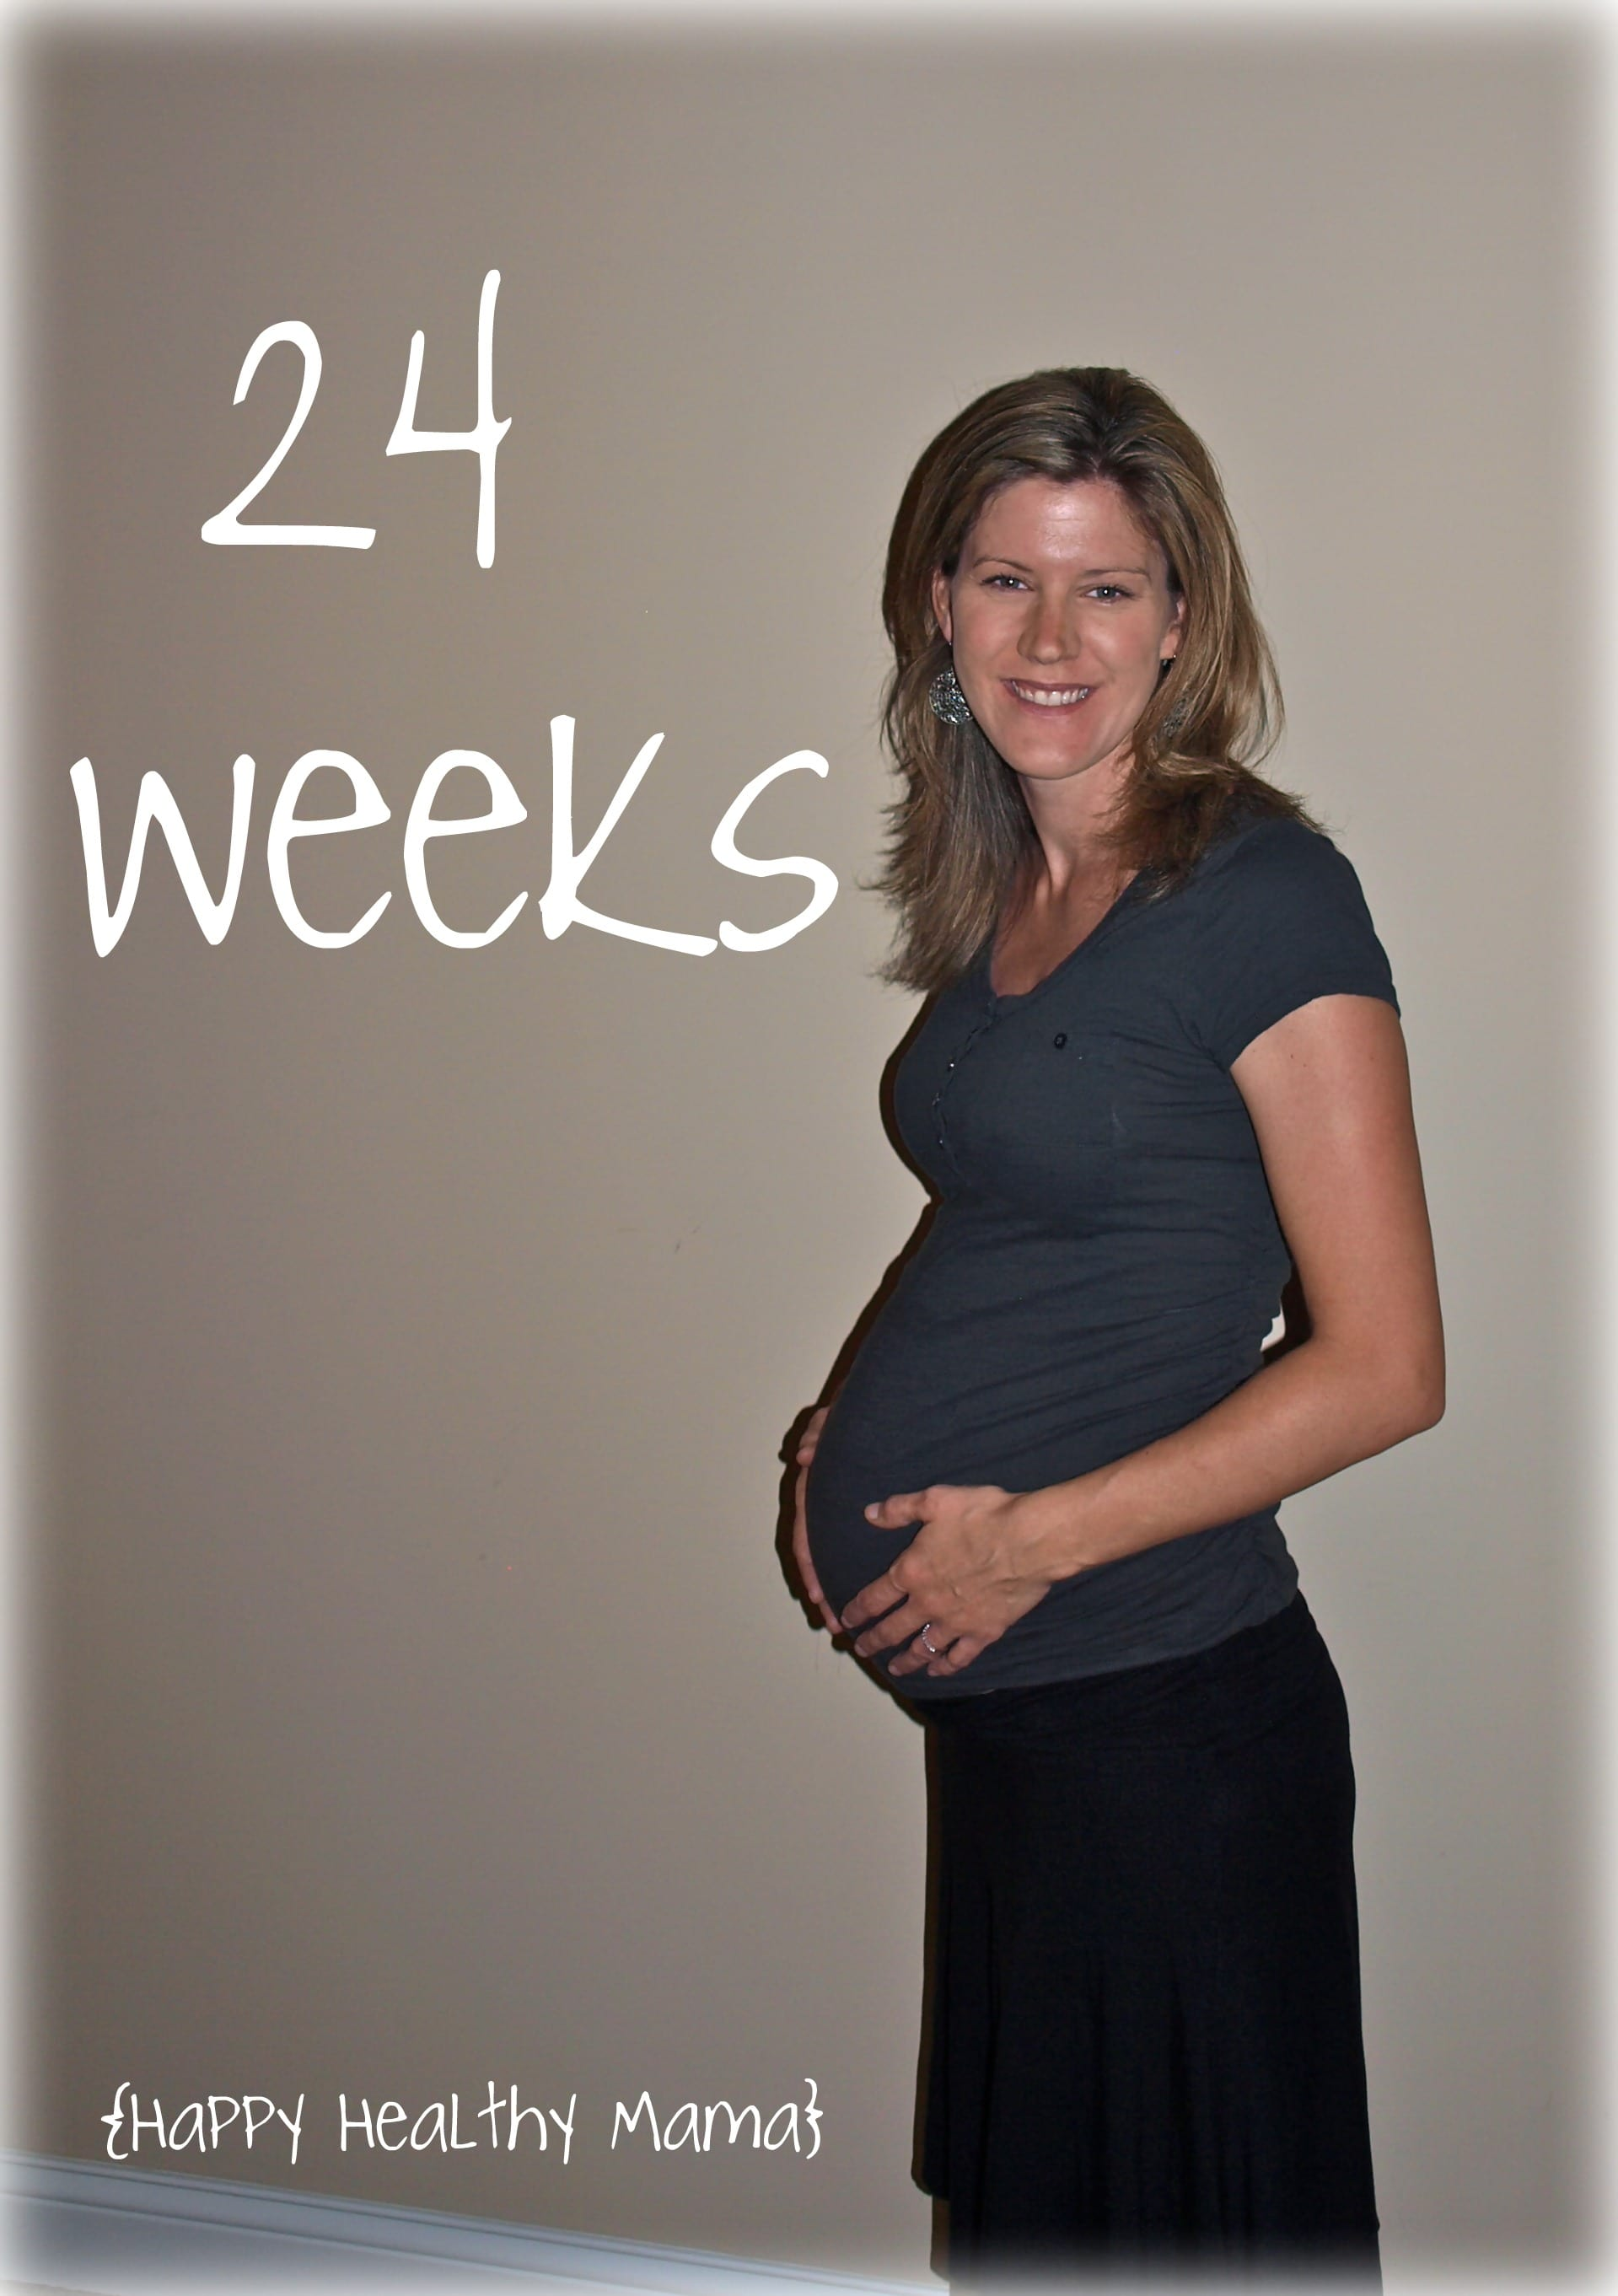 My pregnancy: 24 Weeks - Happy Healthy Mama